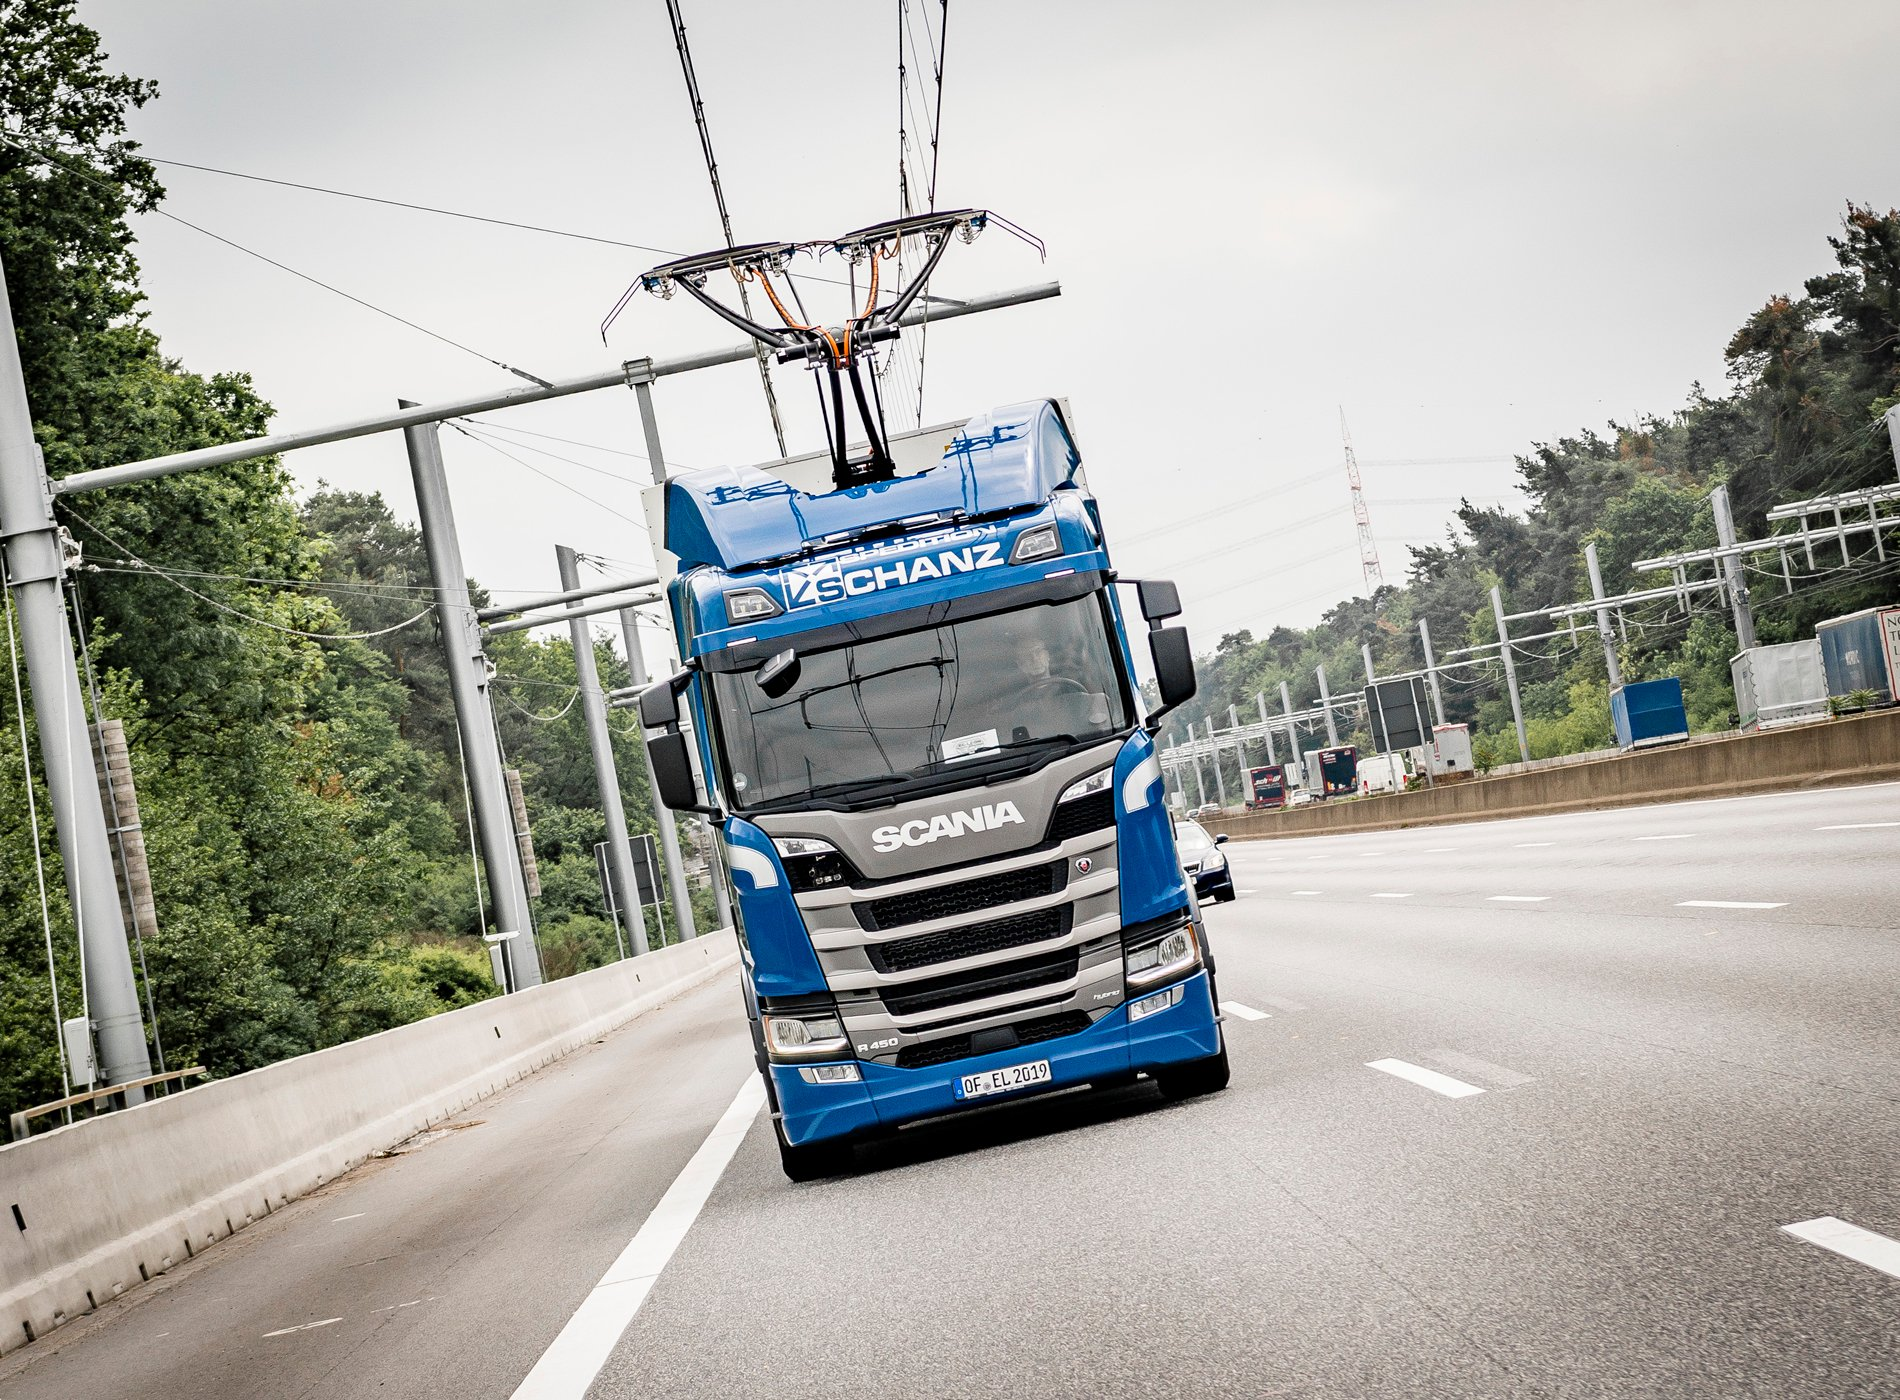 {parent_widget_container=null, label=Image Alt, value=Scania R 450 Oberleitungs-Lkw auf der A5-Teststrecke bei Frankfurt, export_to_template_context=true, content_editable_values=[value]}